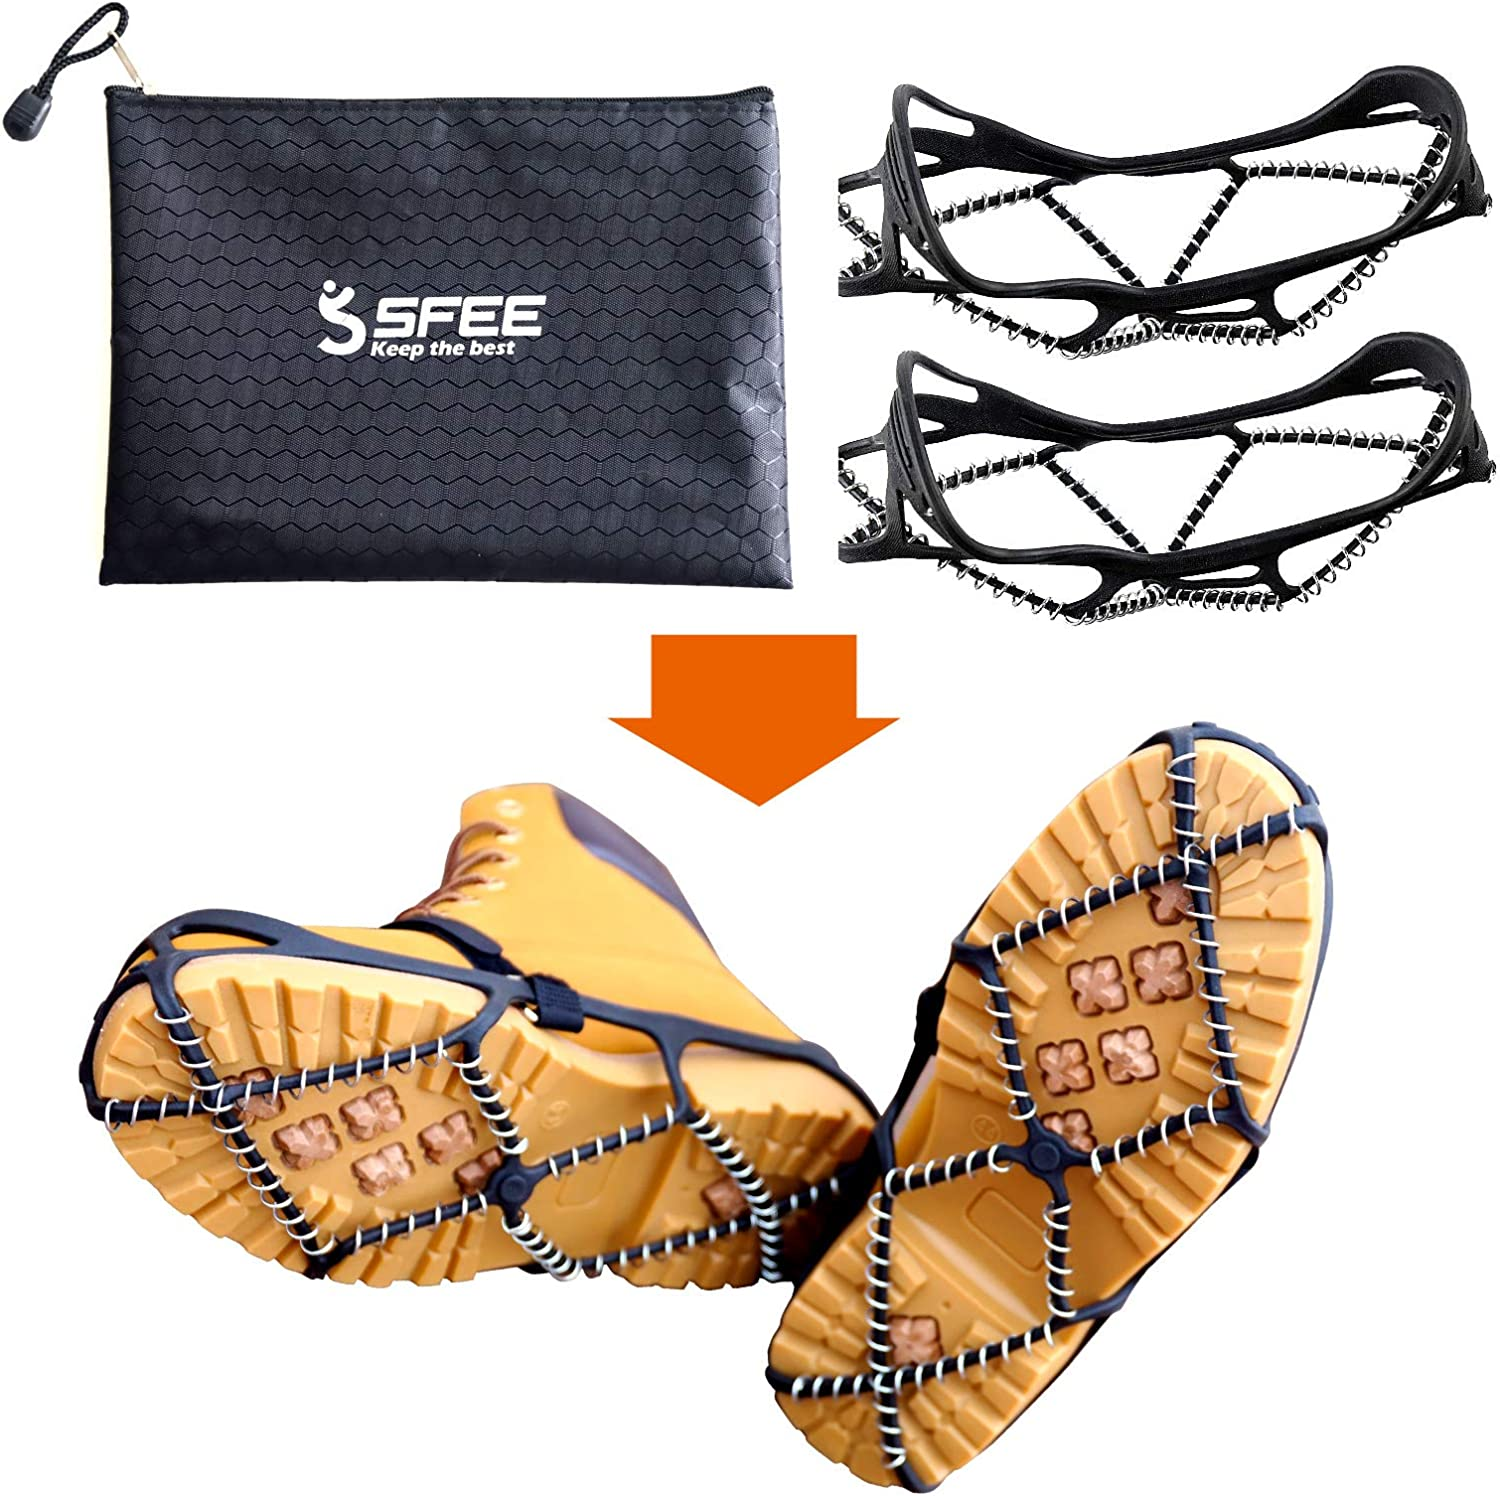 Sfee Ice Cleats for Walking on Ice Snow Grips Crampons Traction for Shoes//Boots Anti-Slip Portable Flexible Footwear for Walking Climbing Hiking Fishing Outdoor Running with 2 Velcro Straps